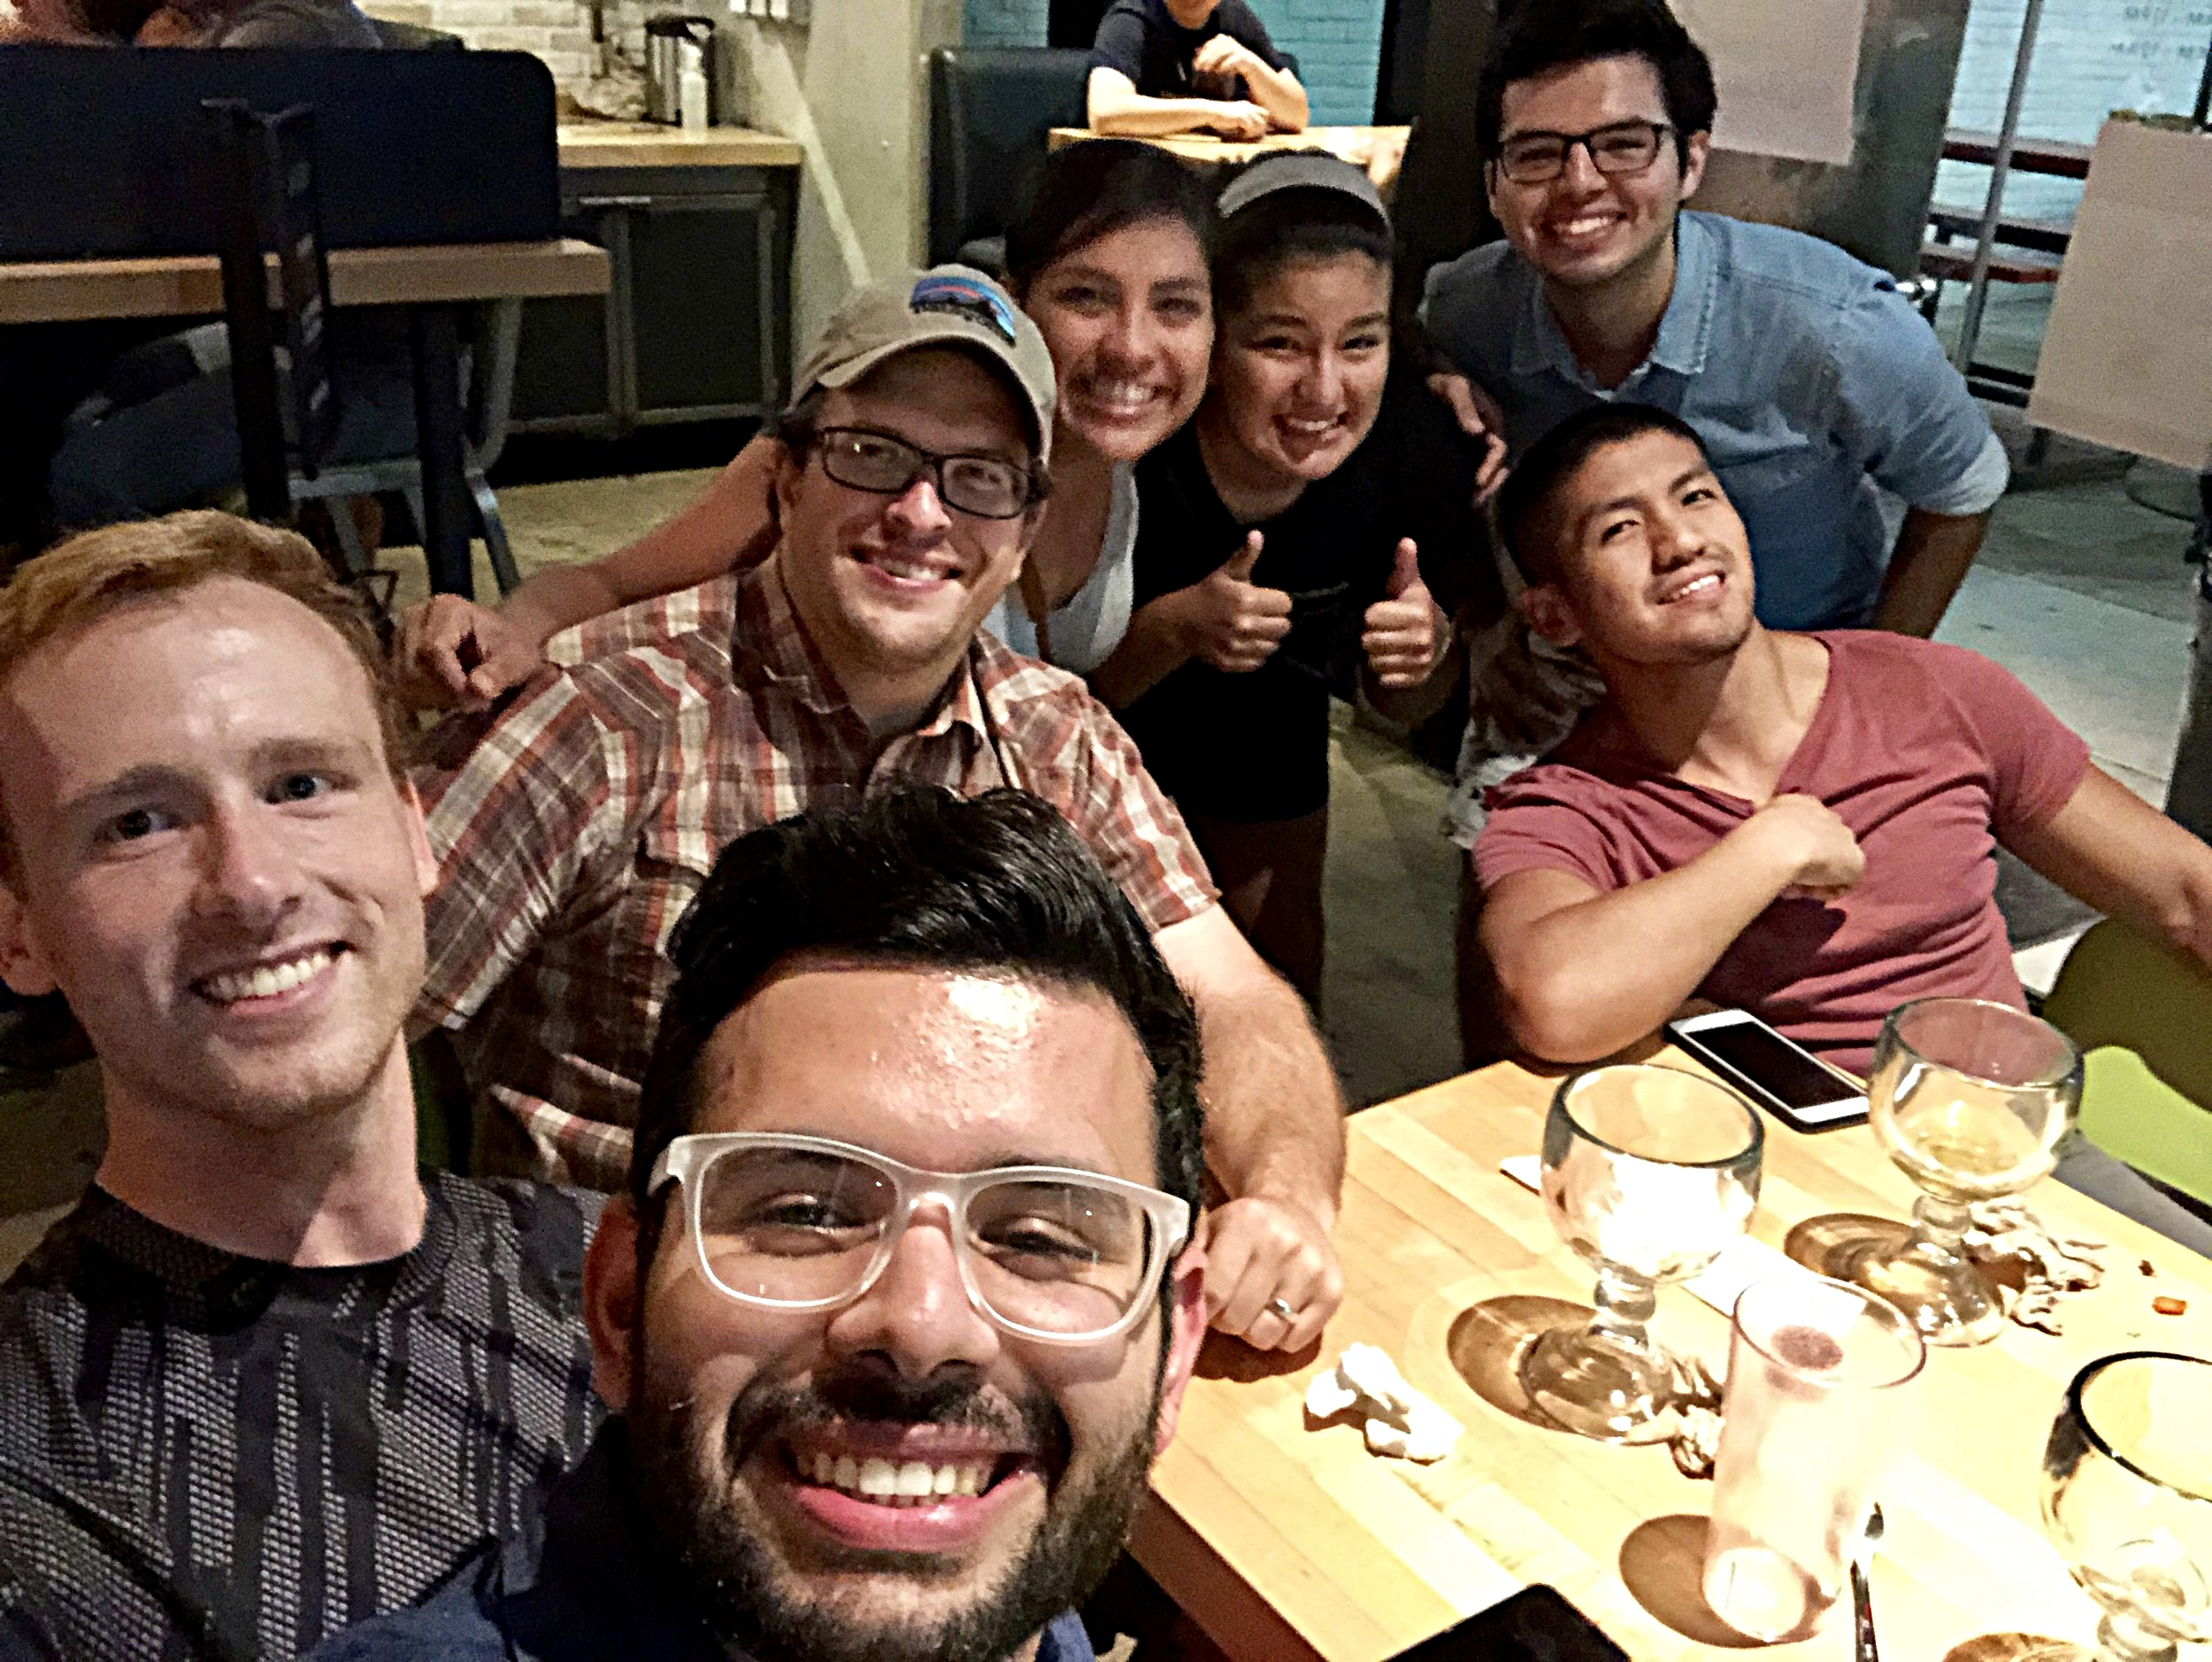 Lab dinner at Hop Doddy to wish Abiud well back at college and to celebrate Carlos joining the lab. Alex Herman was missed! Summer 2018.